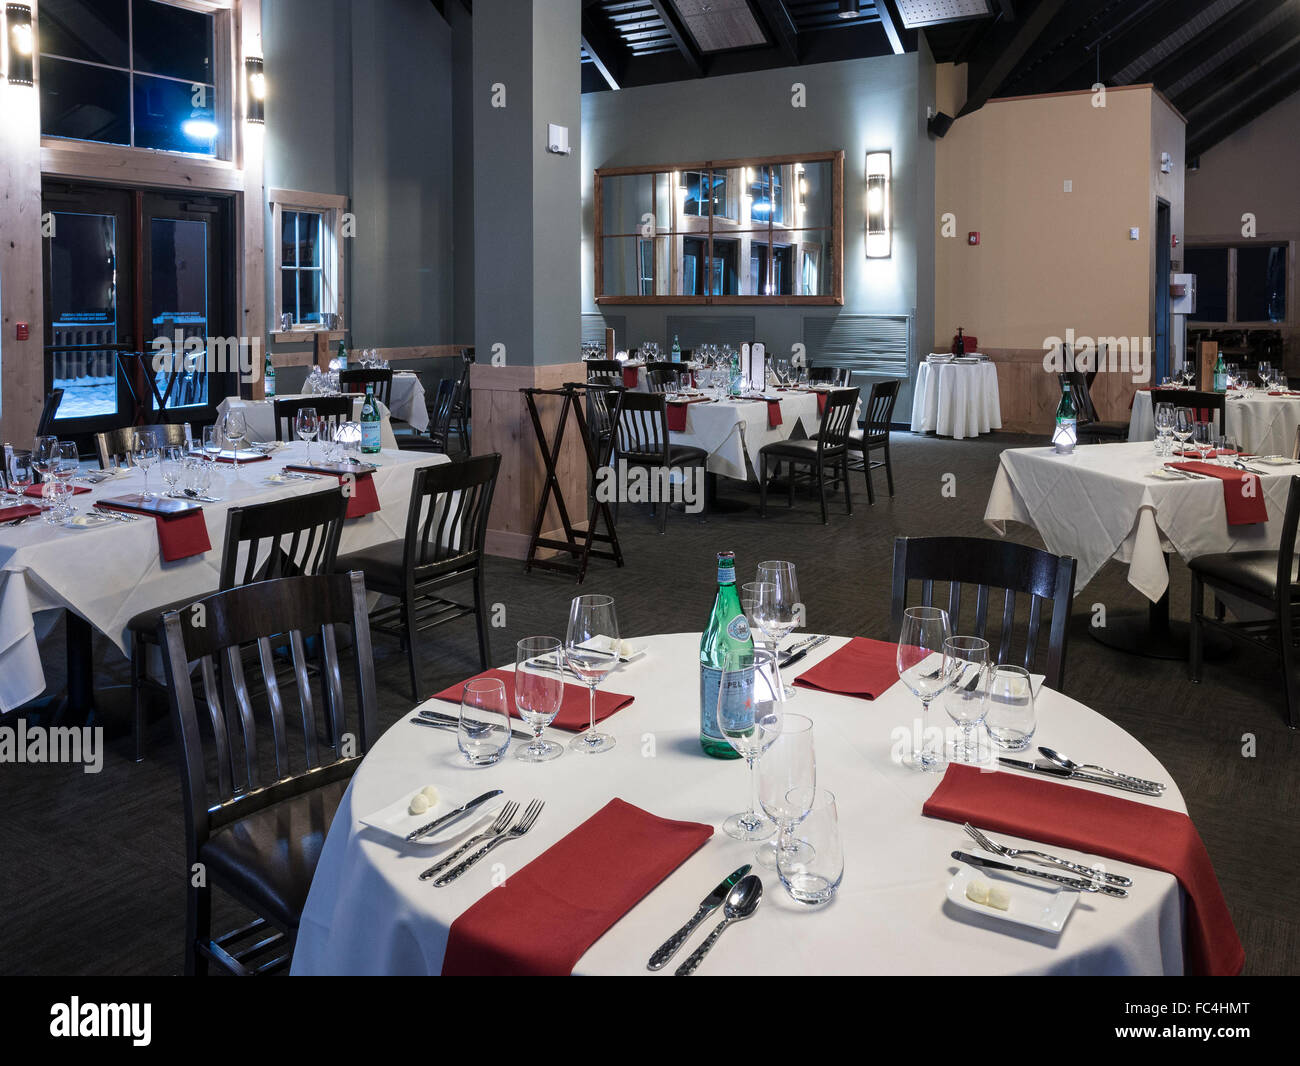 Inside Four Points Lodge for evening dinners, Steamboat Ski Area, Steamboat Springs, Colorado. - Stock Image